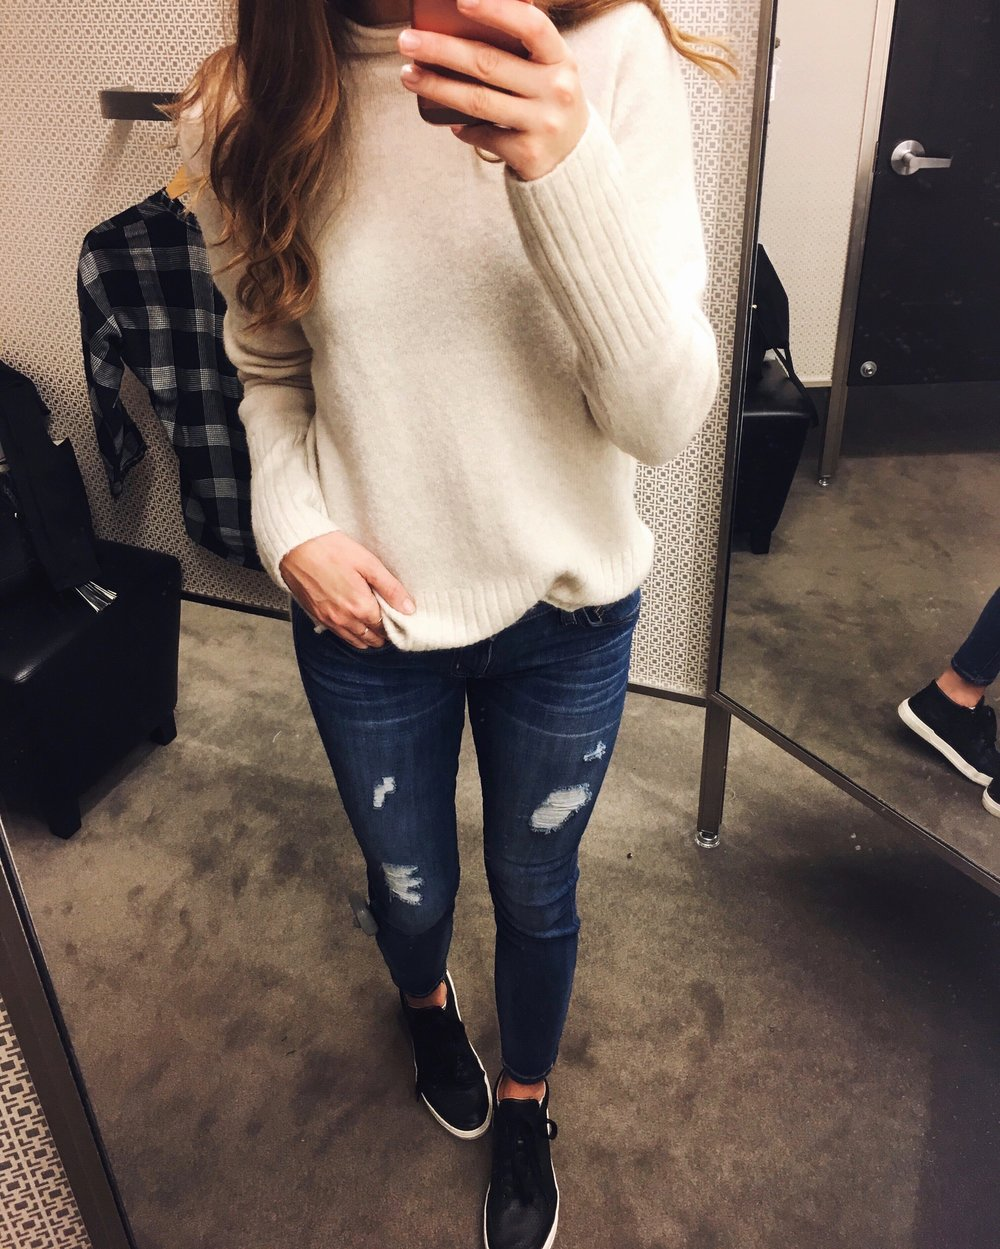 Black Friday Sale Items: Sweater:  Madewell . Jeans:  Current/Elliott